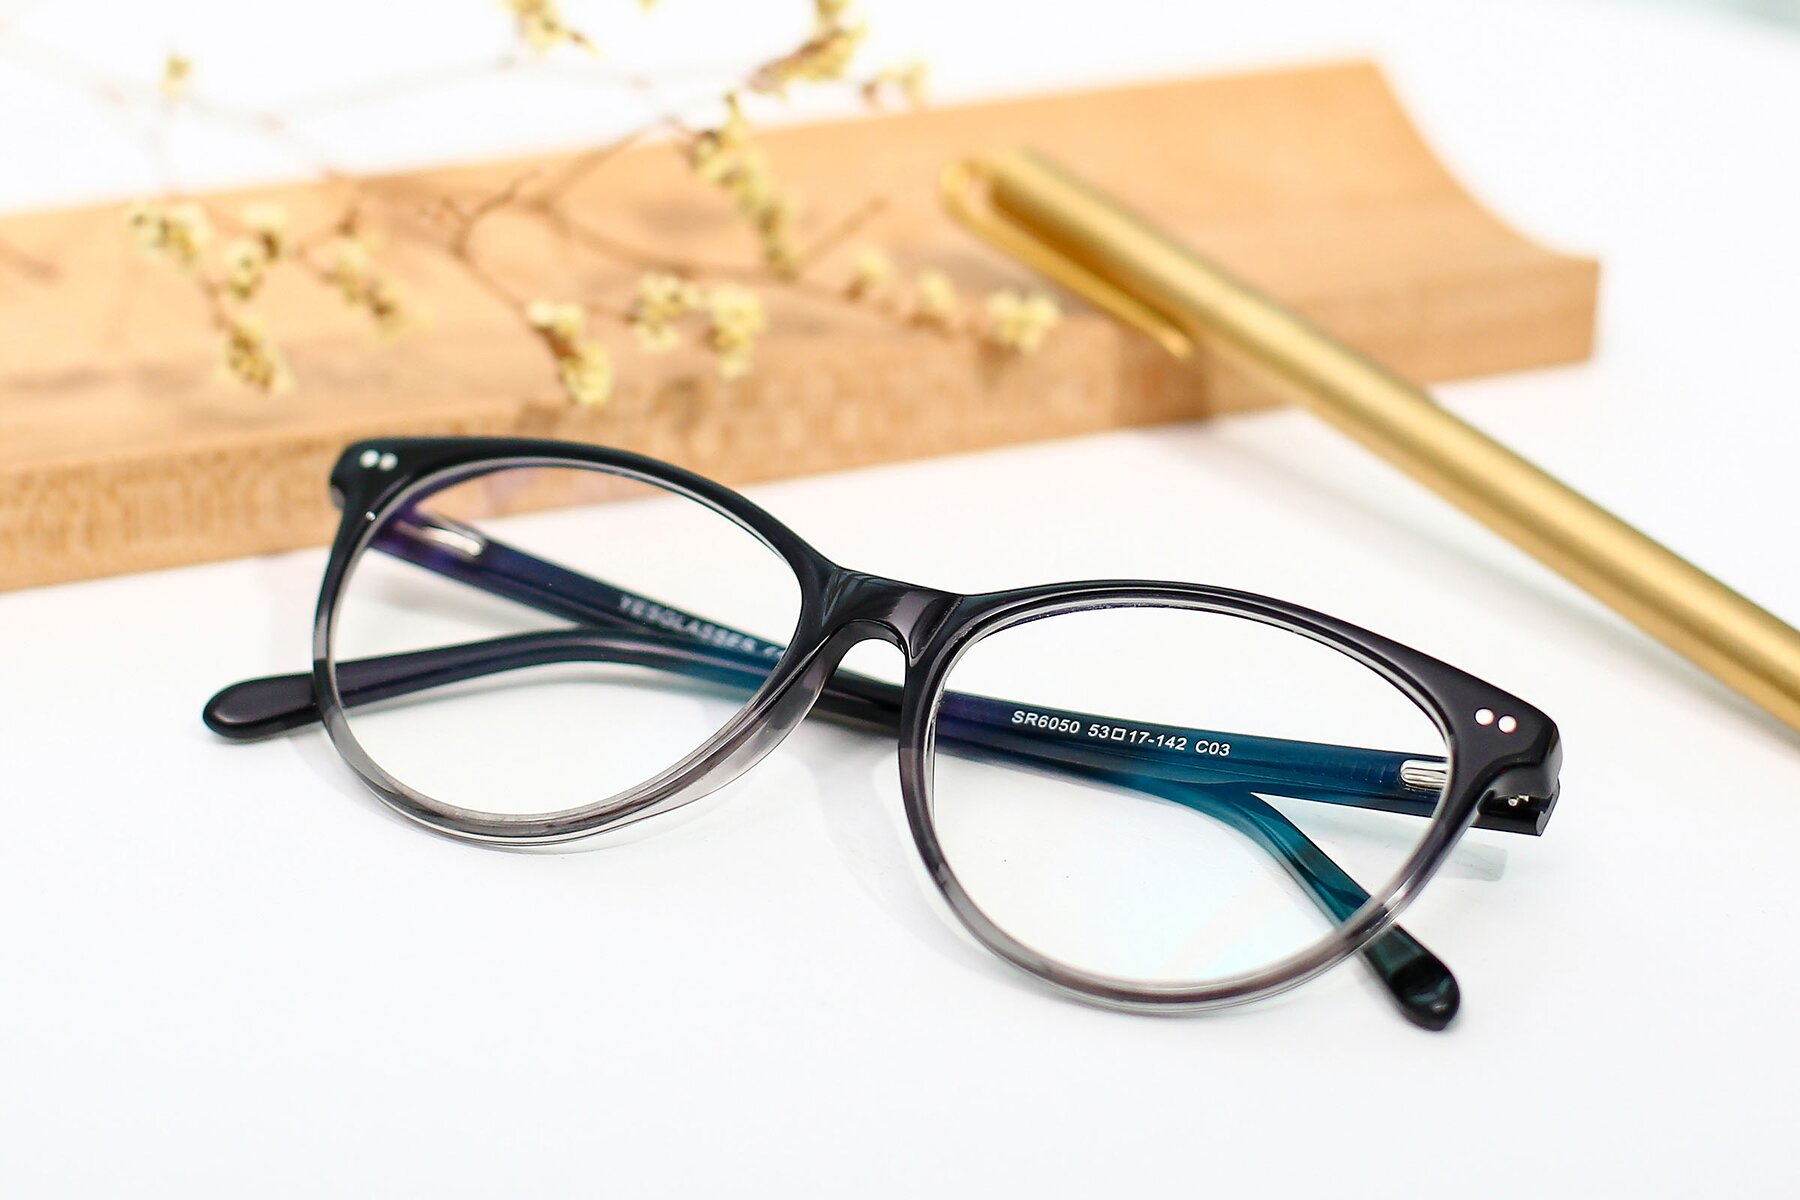 Women's lifestyle photography #1 of SR6050 in Transparent Gradient Black with Clear Eyeglass Lenses